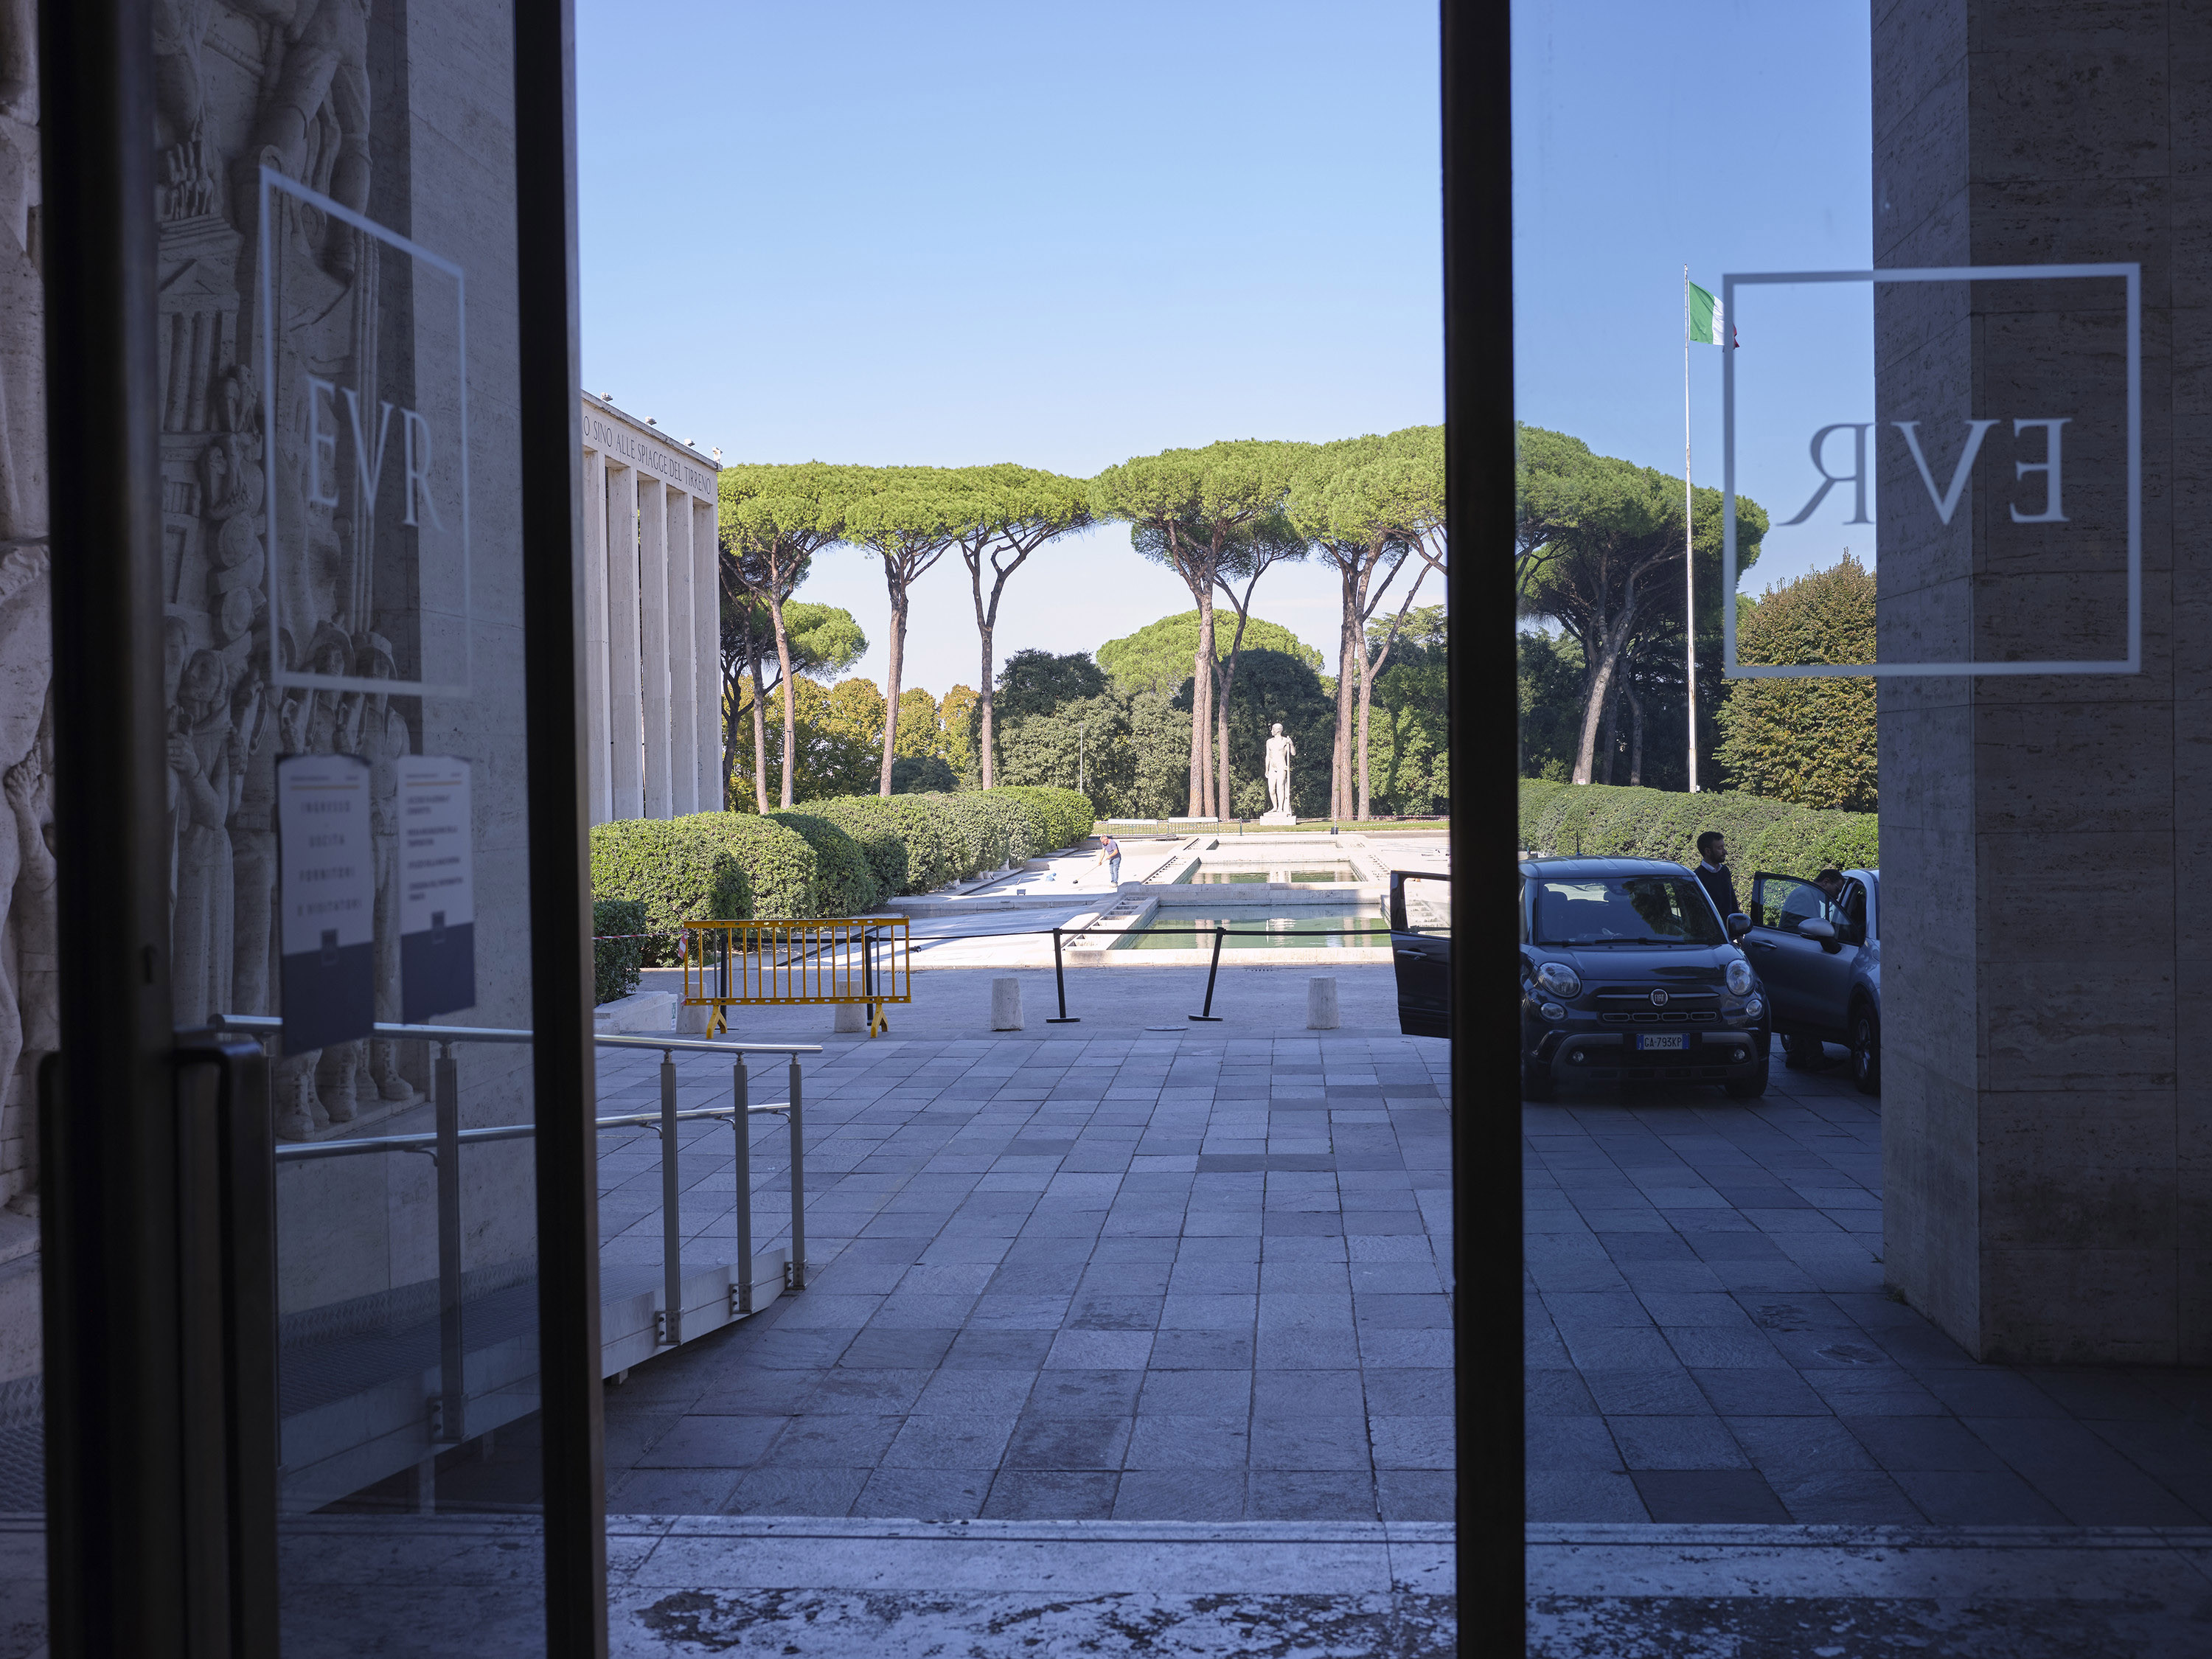 A view from the Palazzo Uffici, completed in 1939, before war forced the cancellation of the 1942 World's Fair. A bas-relief sculpture depicting Mussolini flanks the entrance. MUST CREDIT: Photo for The Washington Post by Federica Valabrega.